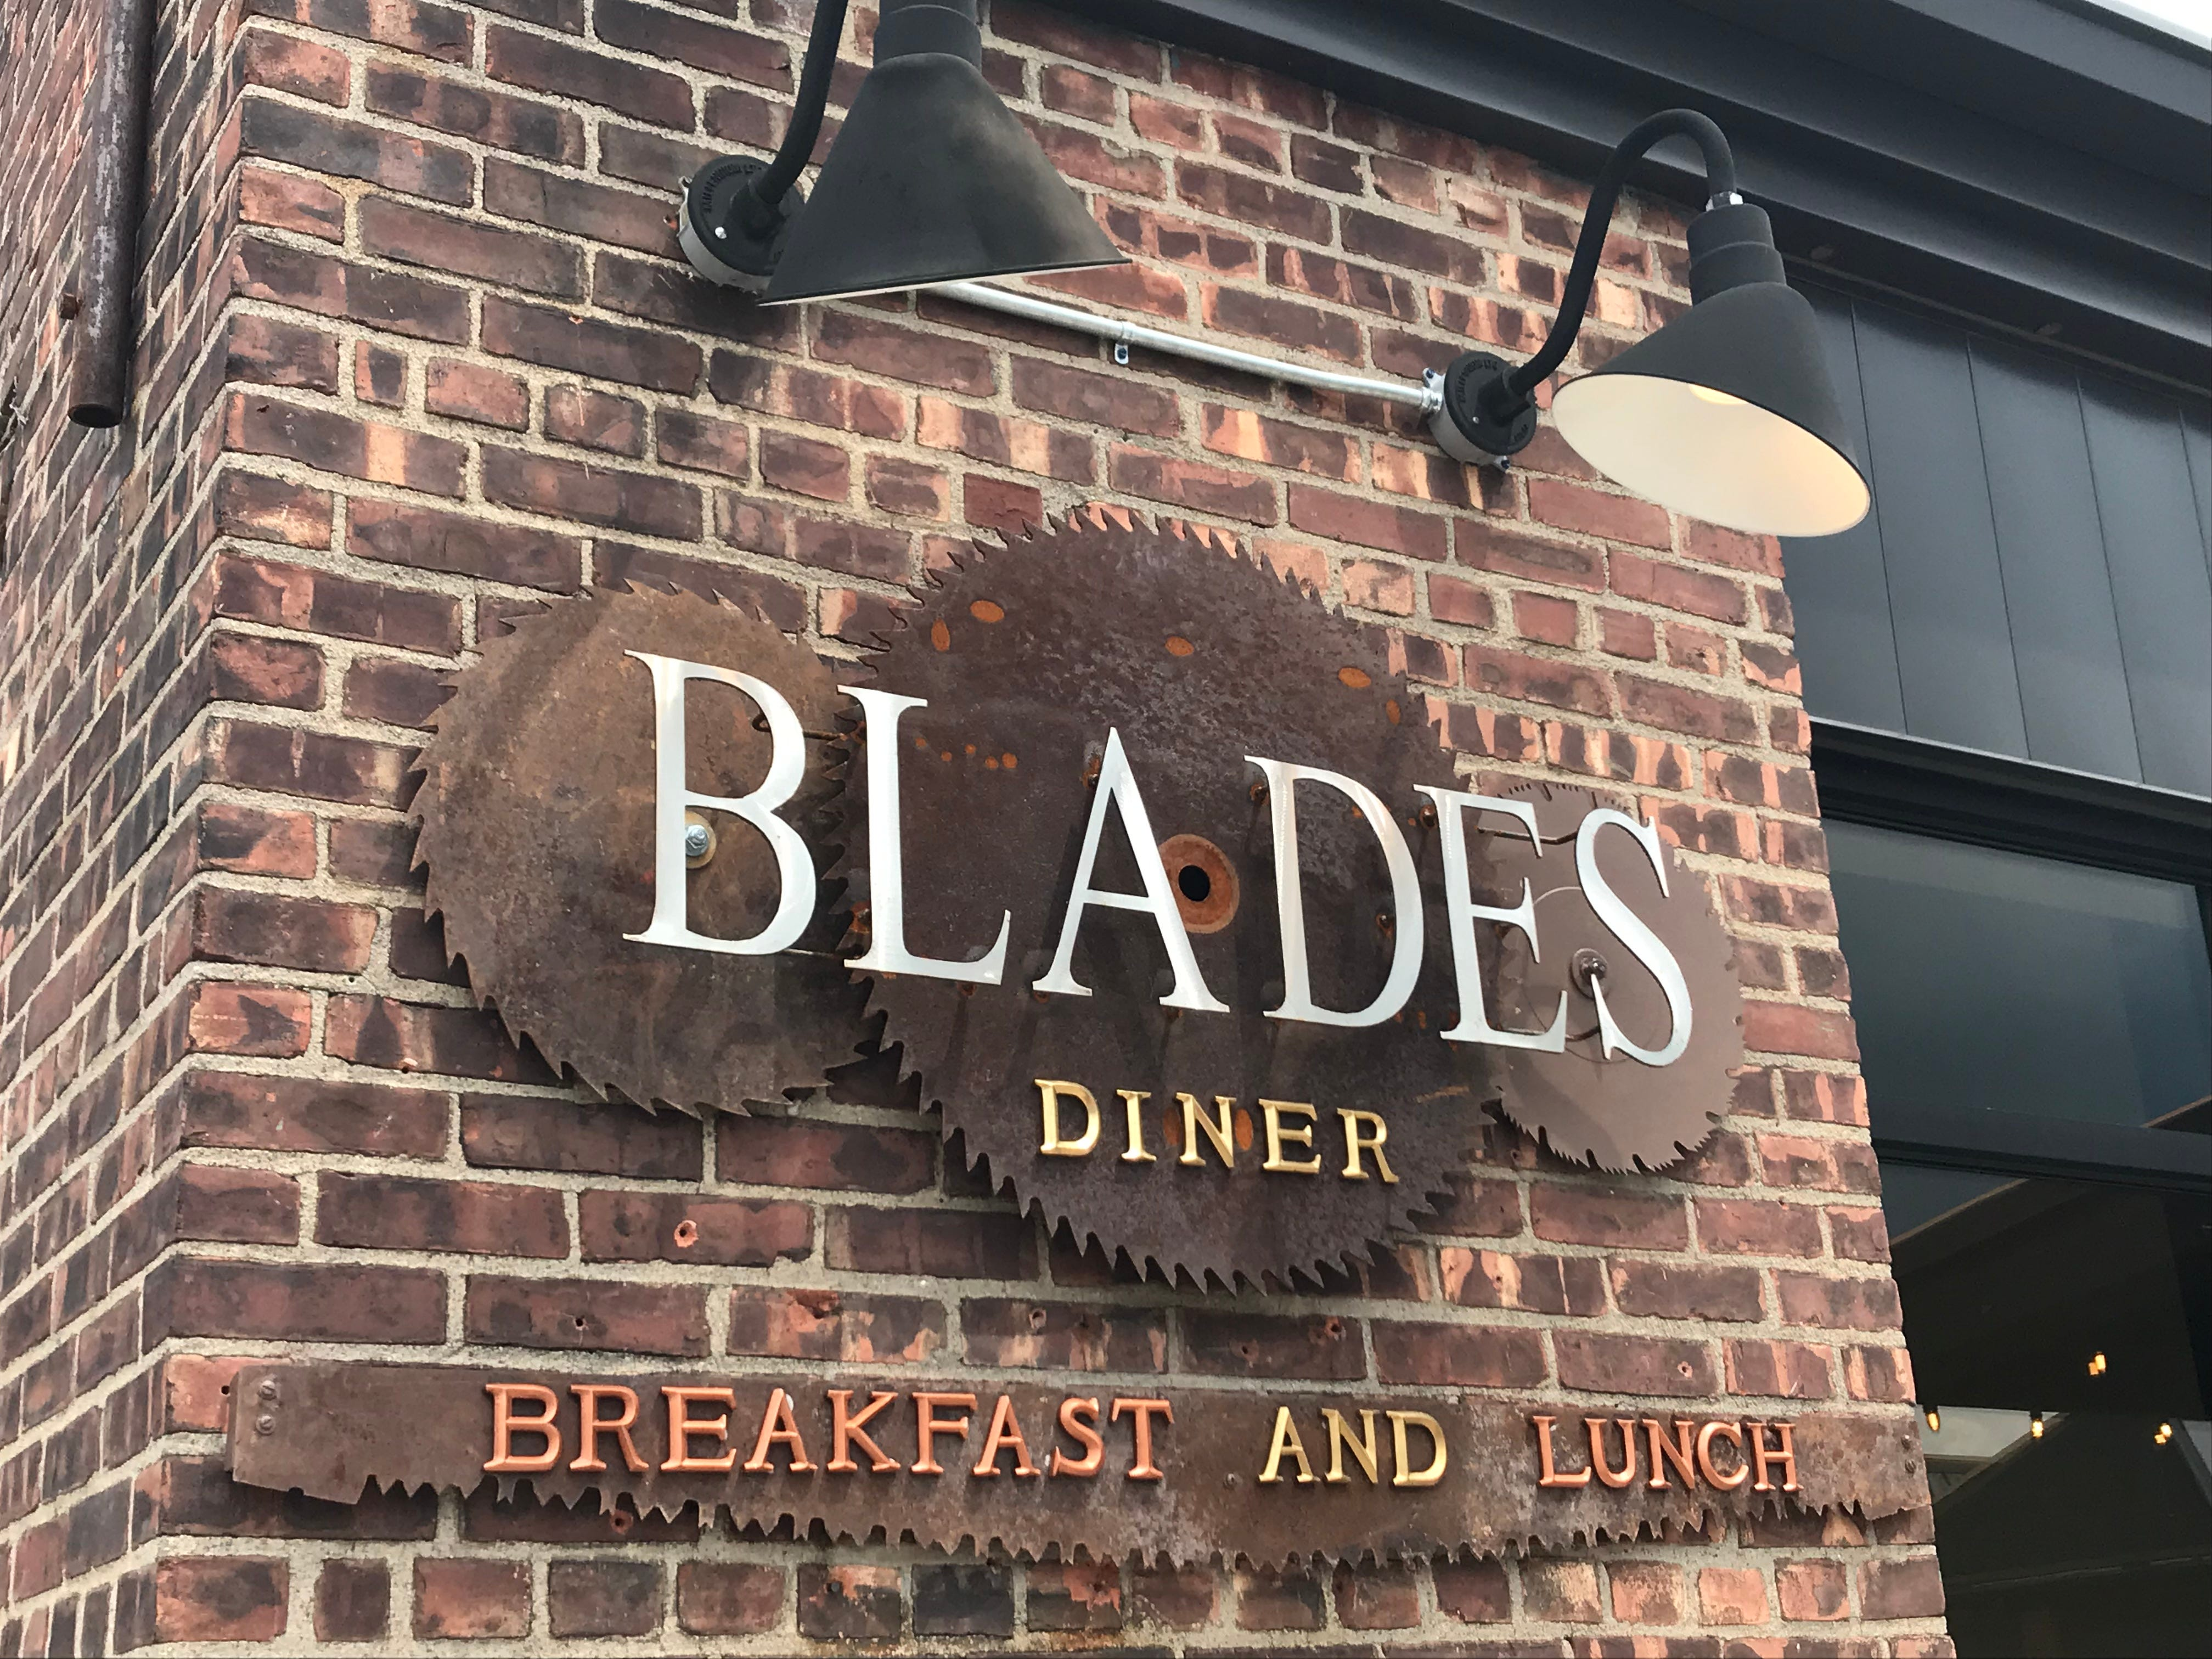 Blades has decorative elements similar to its predecessor that opened in the 1980s.